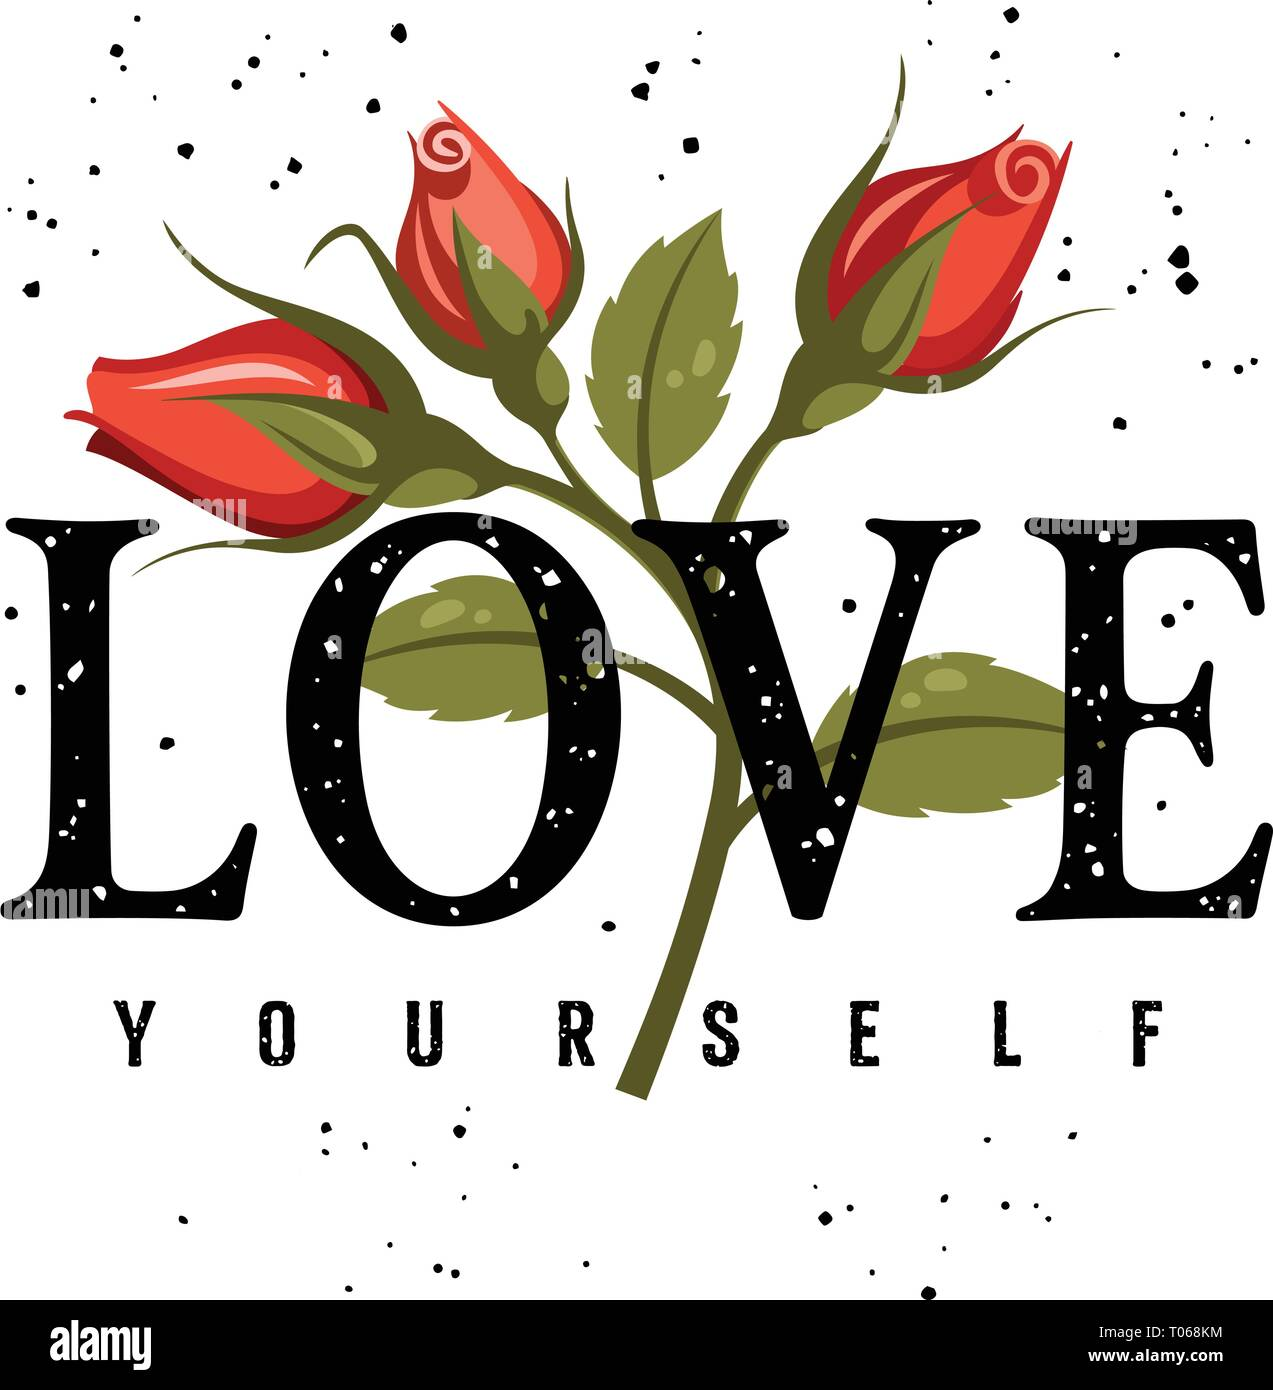 d98136b52b07 Love yourself t-shirt design, slogan typography with red roses, embroidery  patch. Female Graphic Tee. Vector illustration with grunge textured slogan